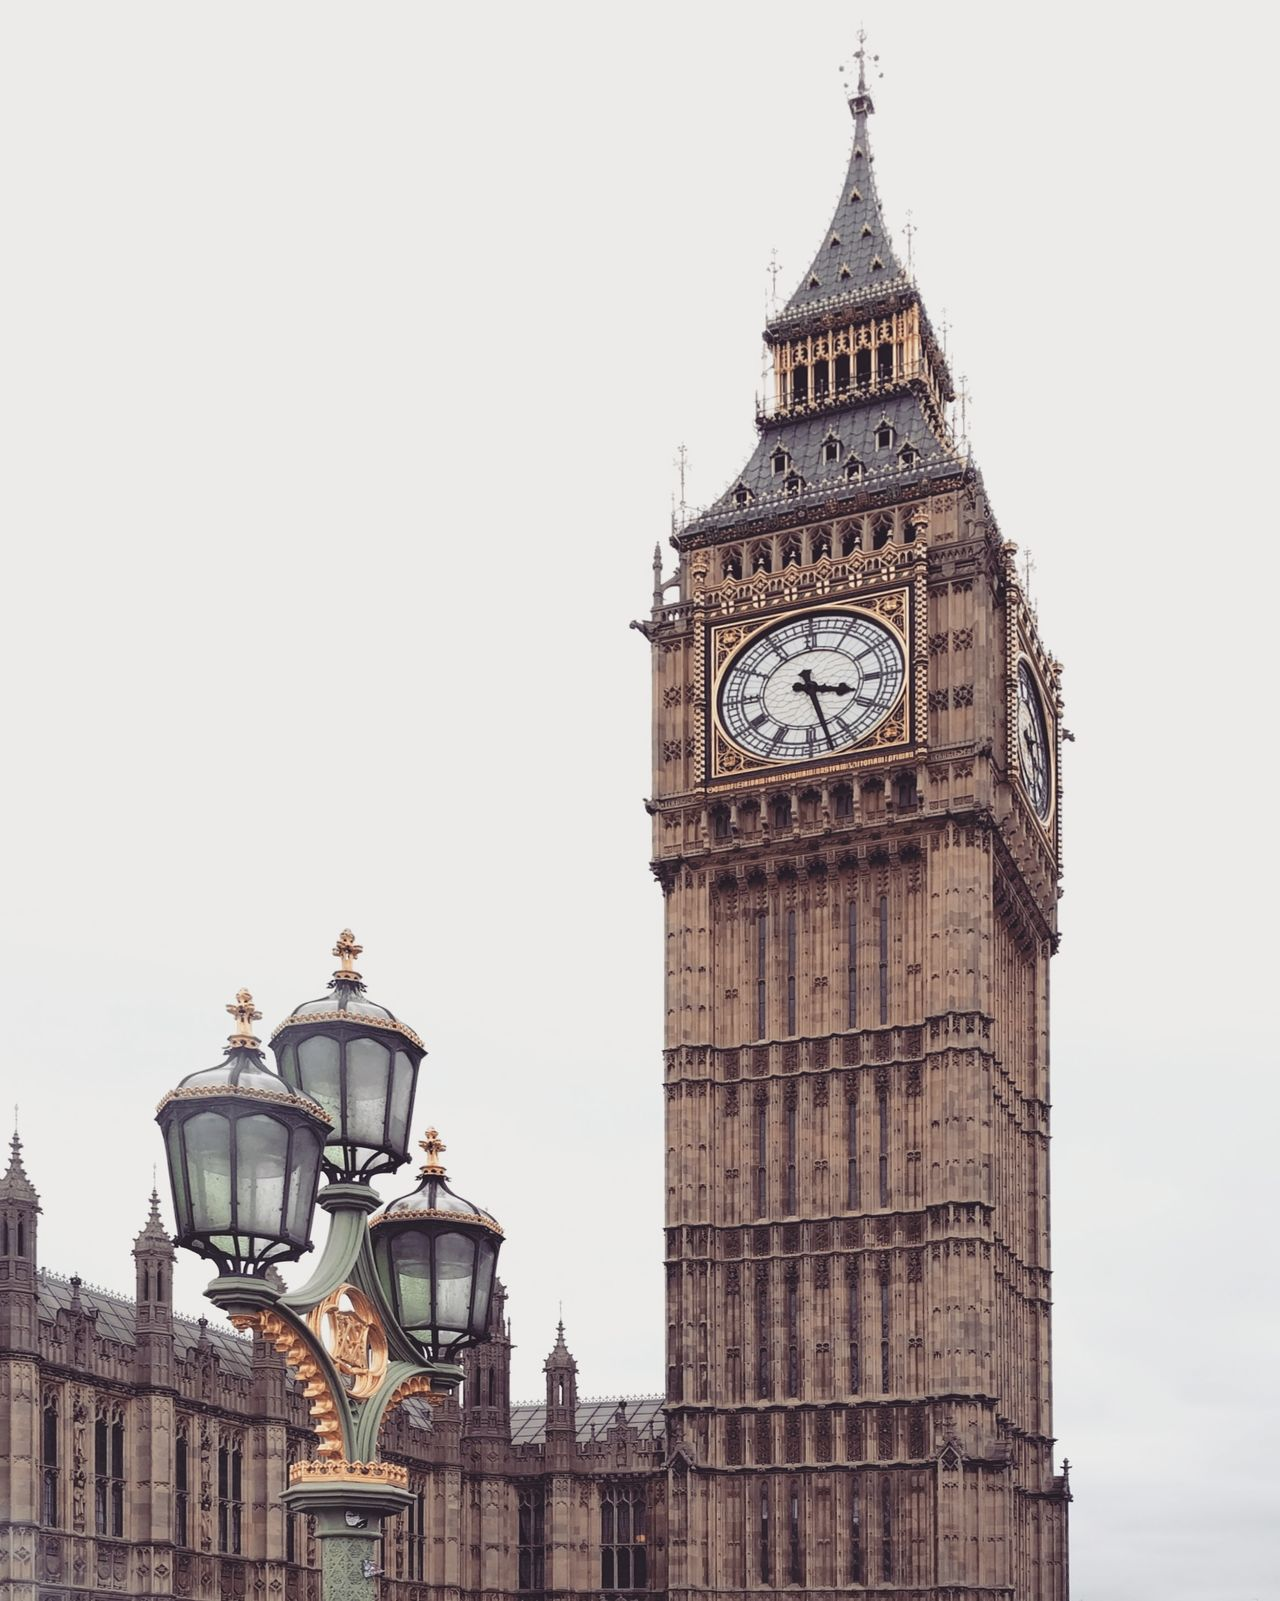 Otra foto de mi viaje exprés a Londres ⏺️ Another photo of my trip to London Londres London England Inglaterra Uk Reino Unido United Kingdom Torre Tower Ciudad City Edificio Building Arquitecture Clock Tower Arquitectura Reloj